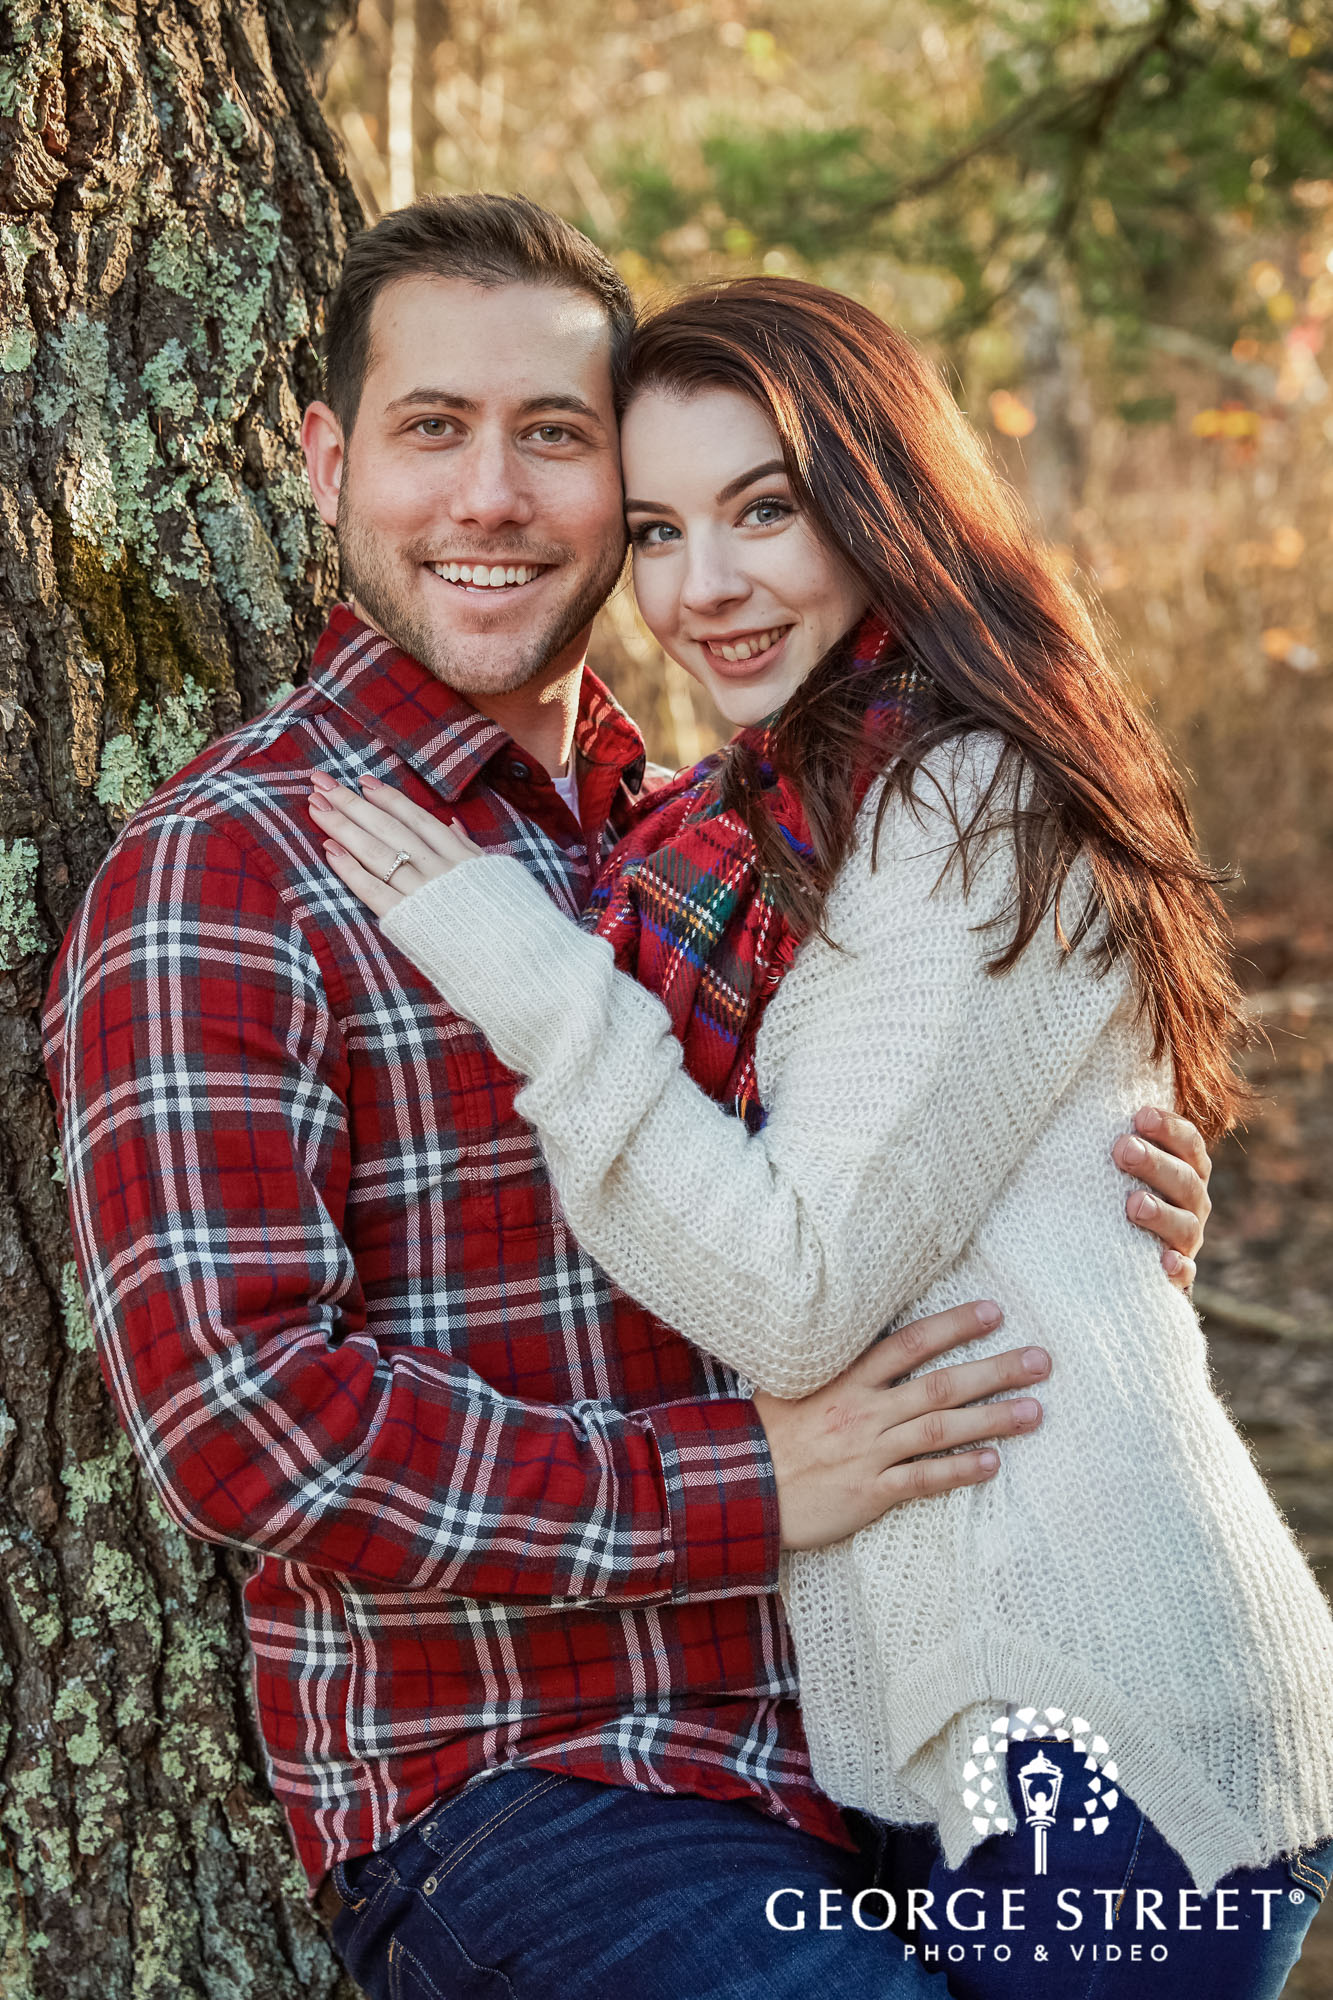 sweet couple in park engagement photo 2